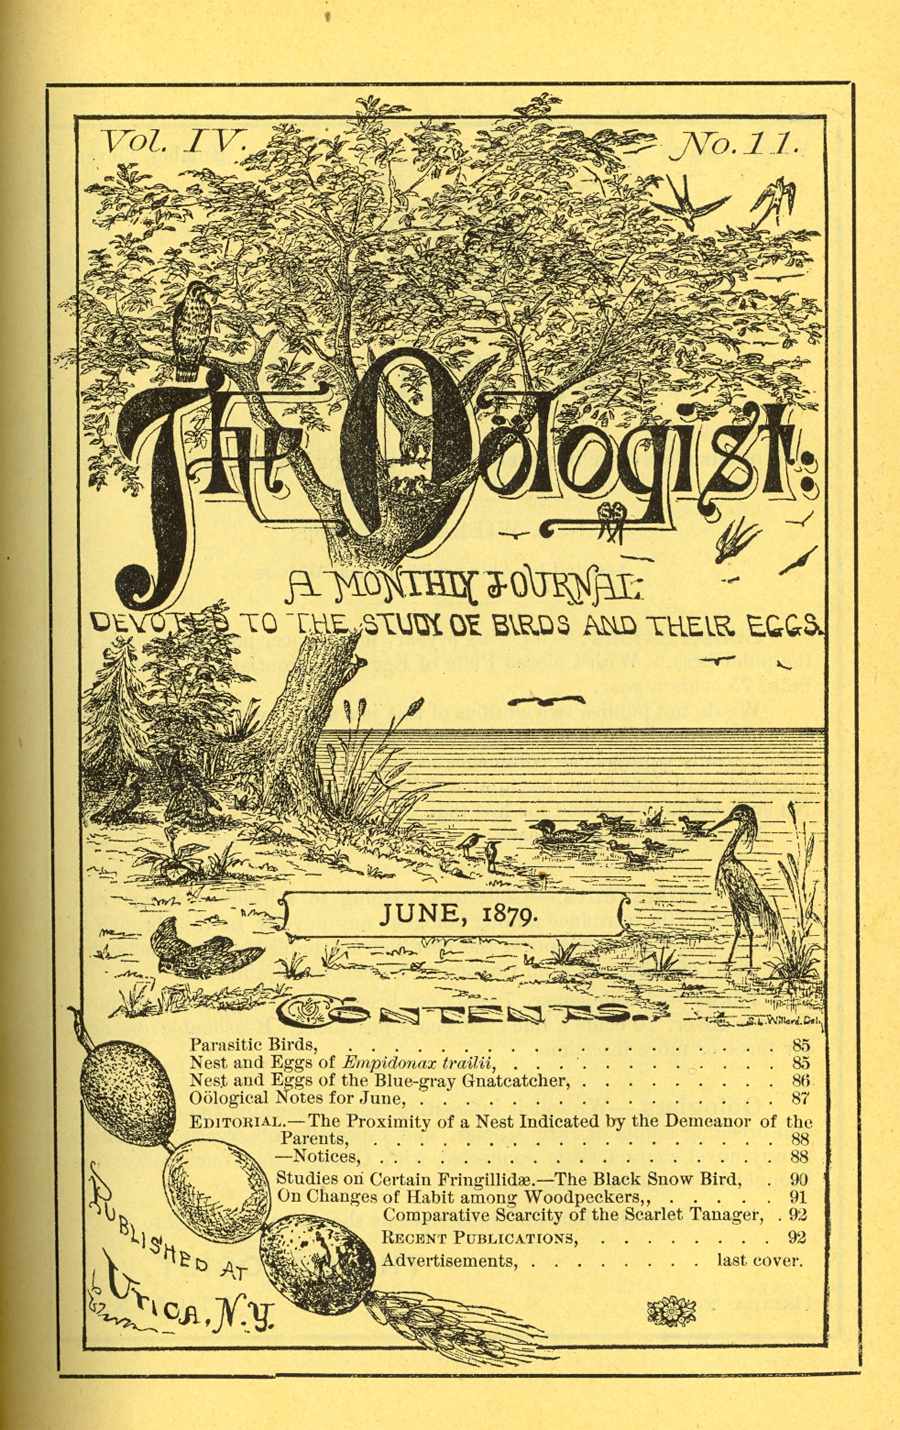 The Oologist